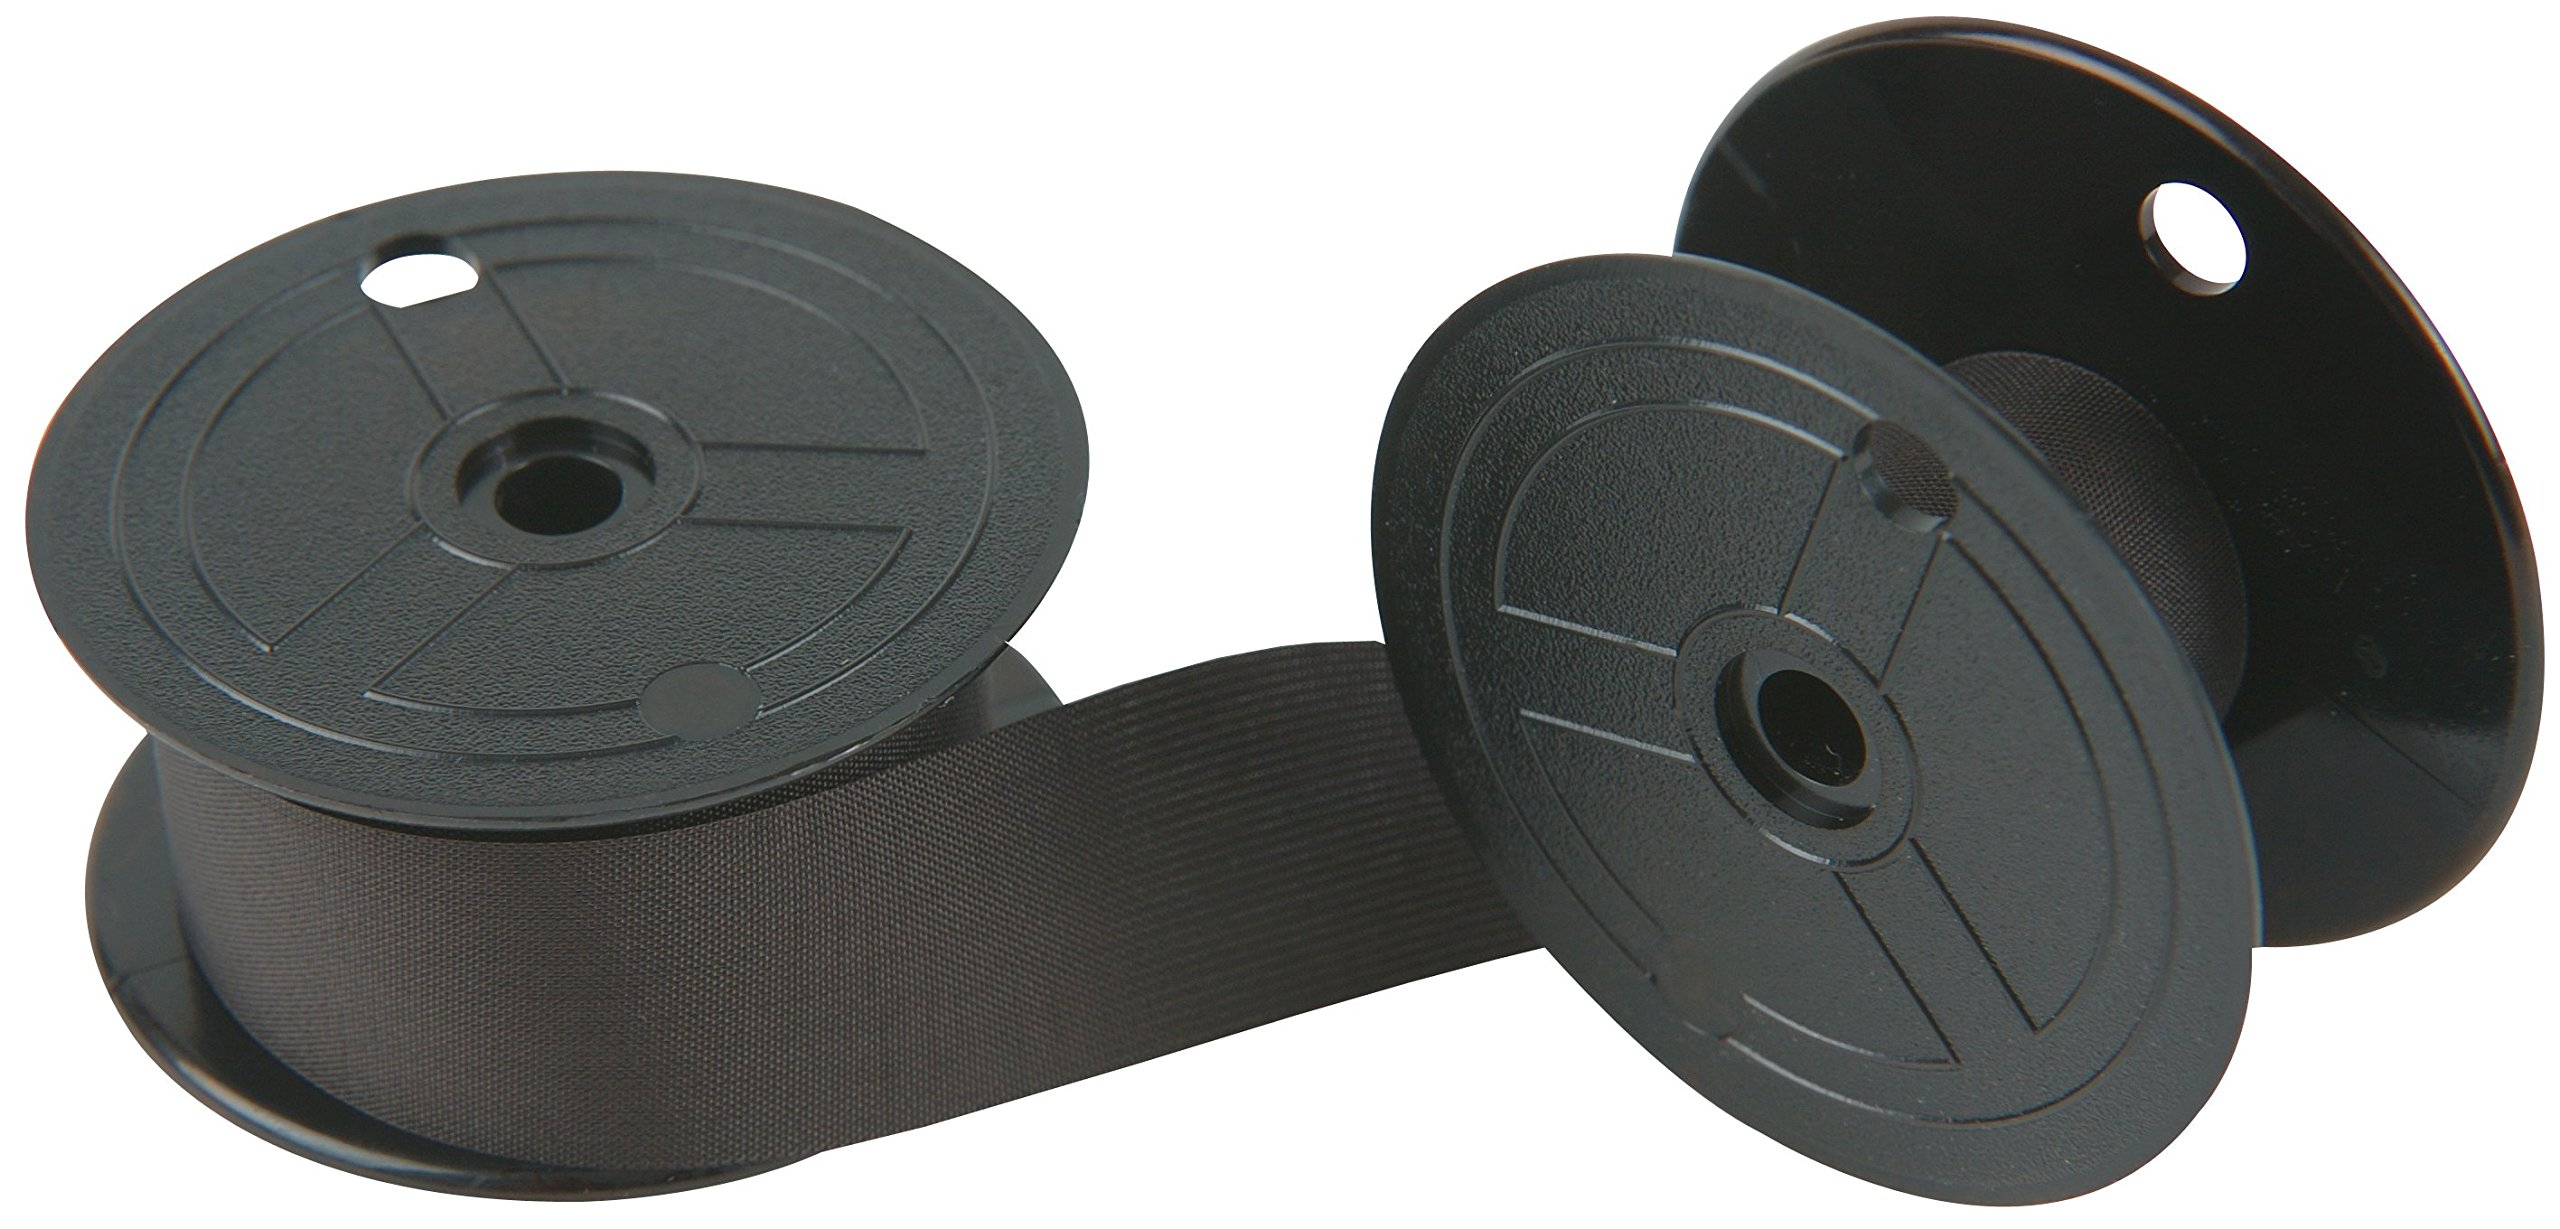 Porelon 11208 Universal Twin Spool Ribbon (black)